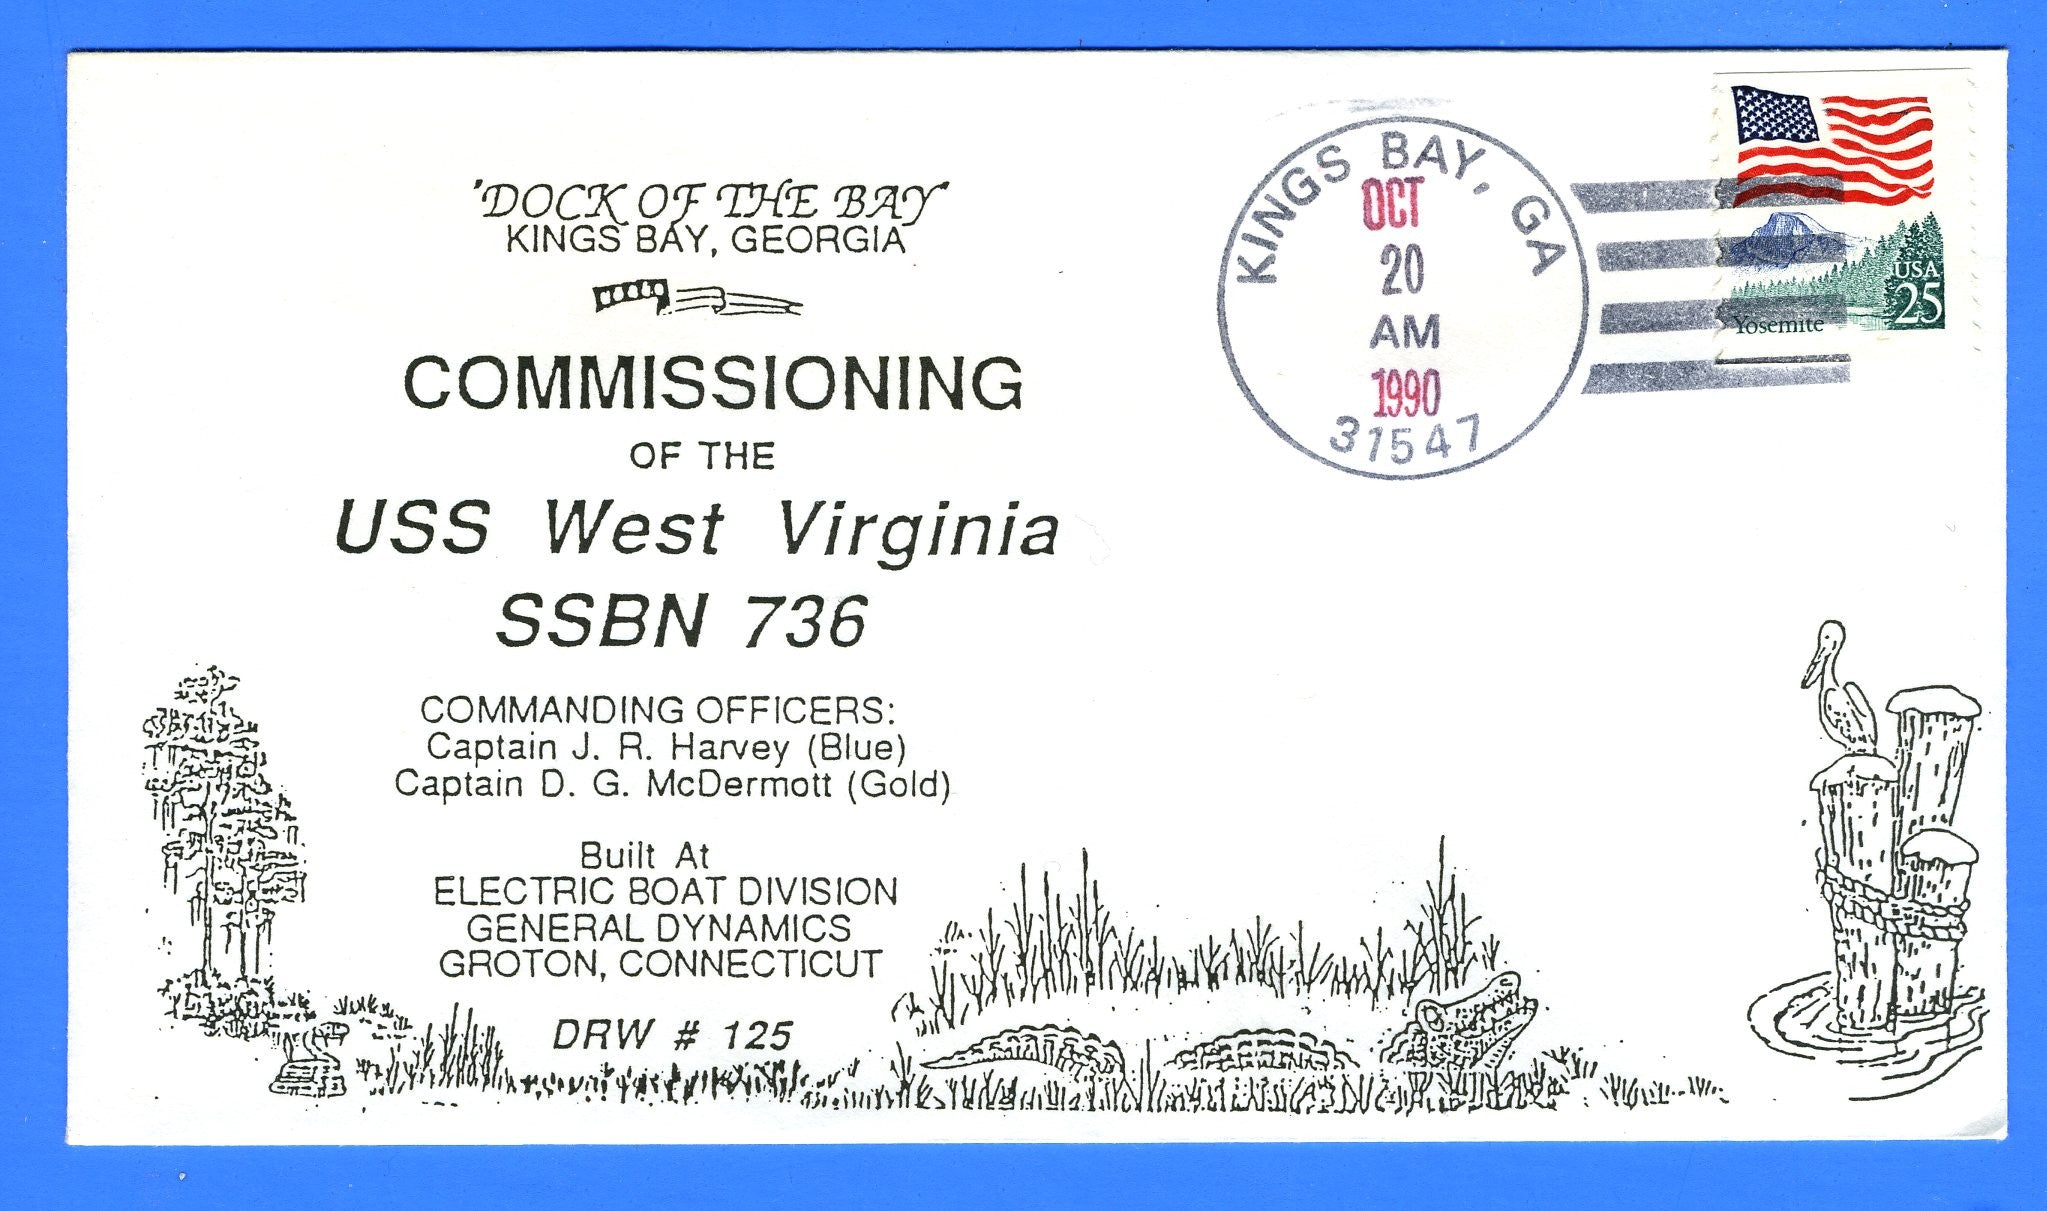 USS West Virginia SSBN-736 Commissioned Oct 20, 1990 - DRW 125